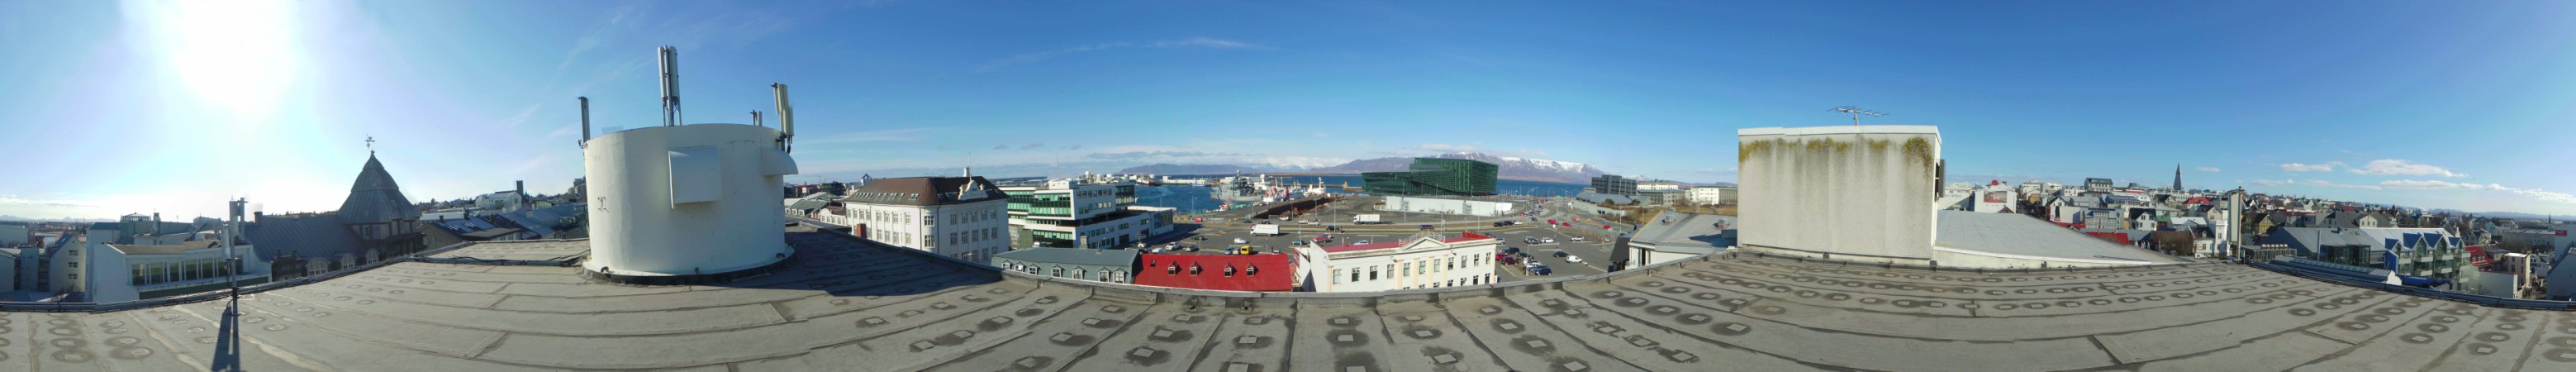 Some of the buildings on the high street are visible, the boats in the harbour are framed by mountains in the distance, as is the angular concert hall made of green glass.